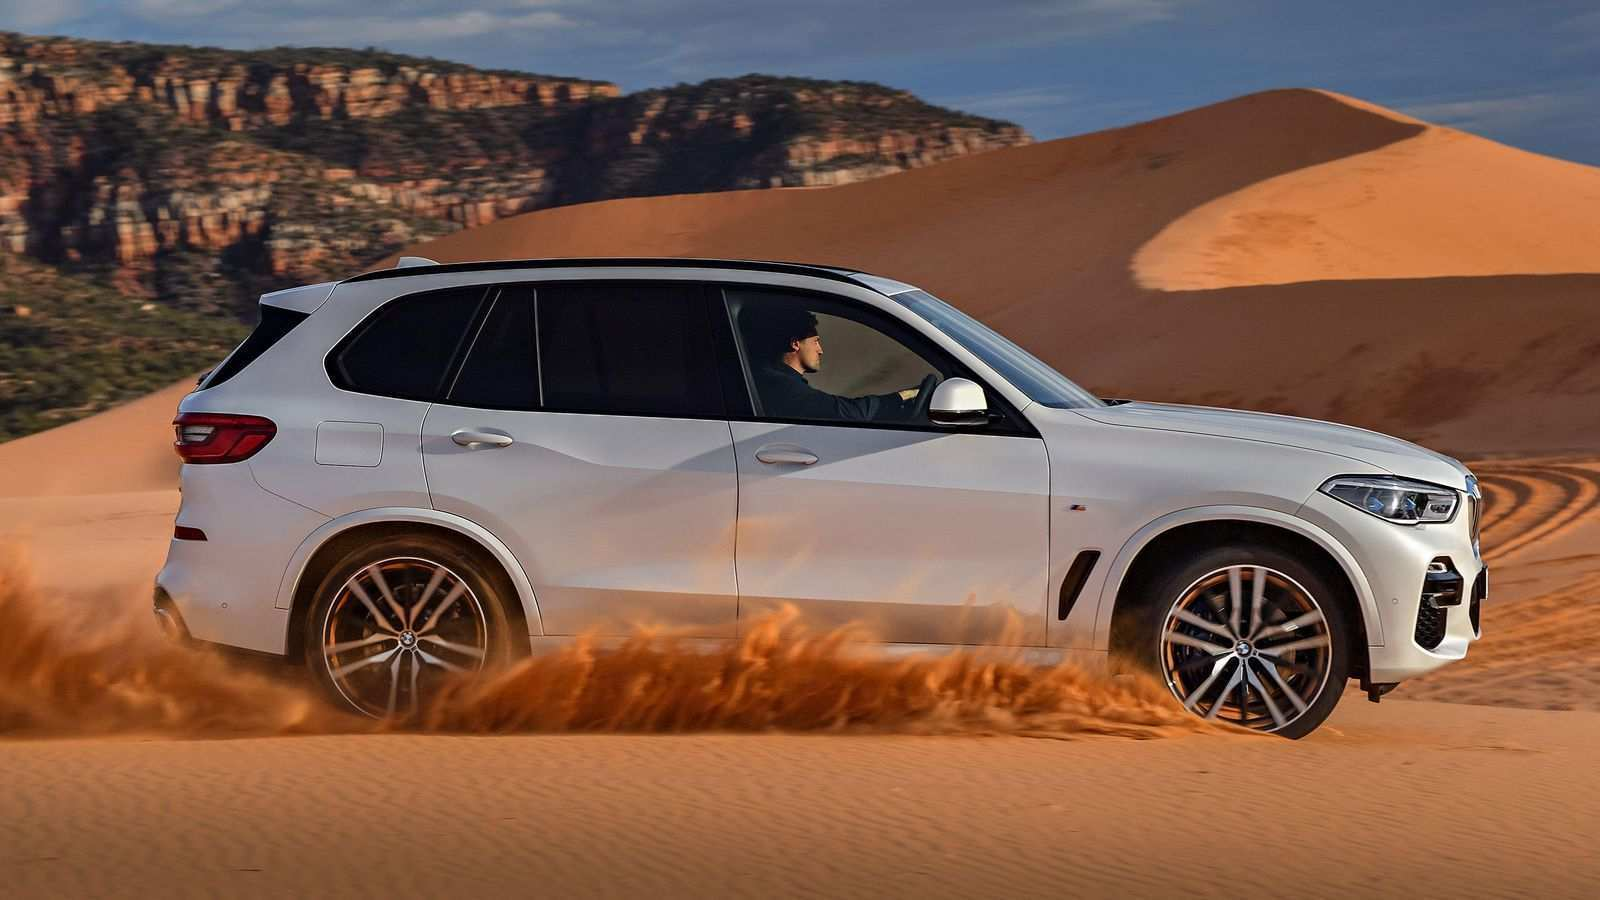 65 The Best Next Gen BMW X5 Suv Speed Test